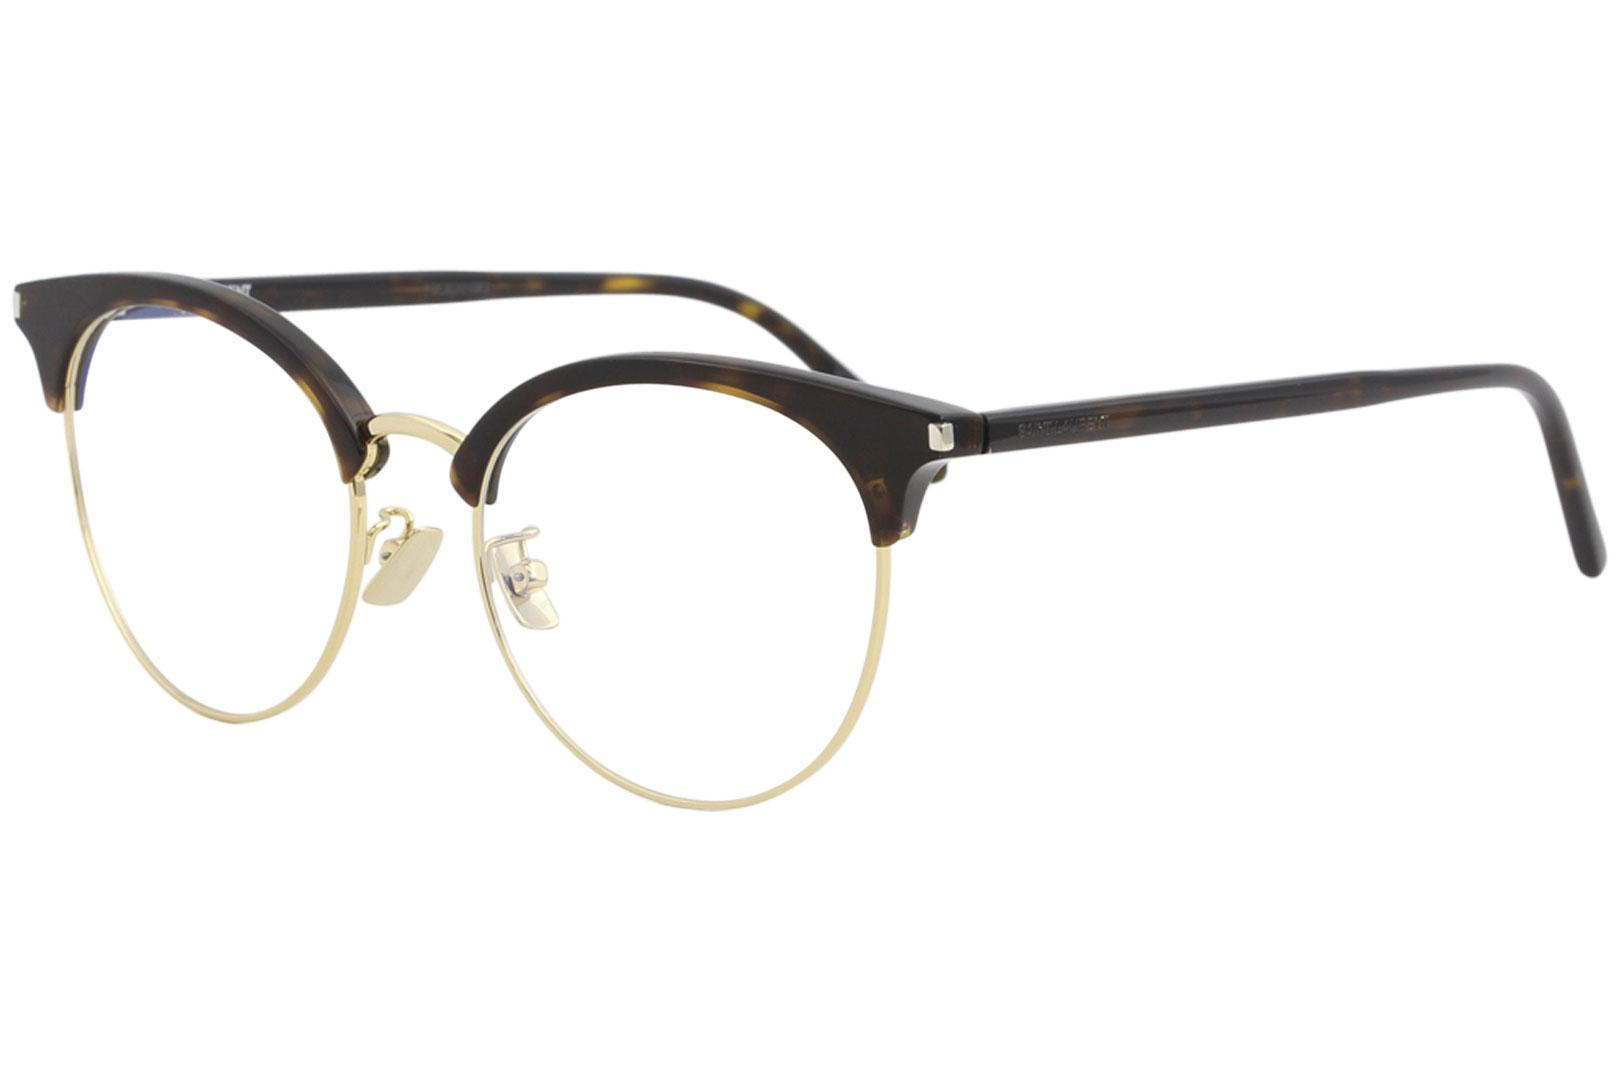 Image of Saint Laurent Eyeglasses SL233/F SL/233/F Full Rim Optical Frame - Havana/Gold   003 - Lens 52 Bridge 18 Temple 150mm